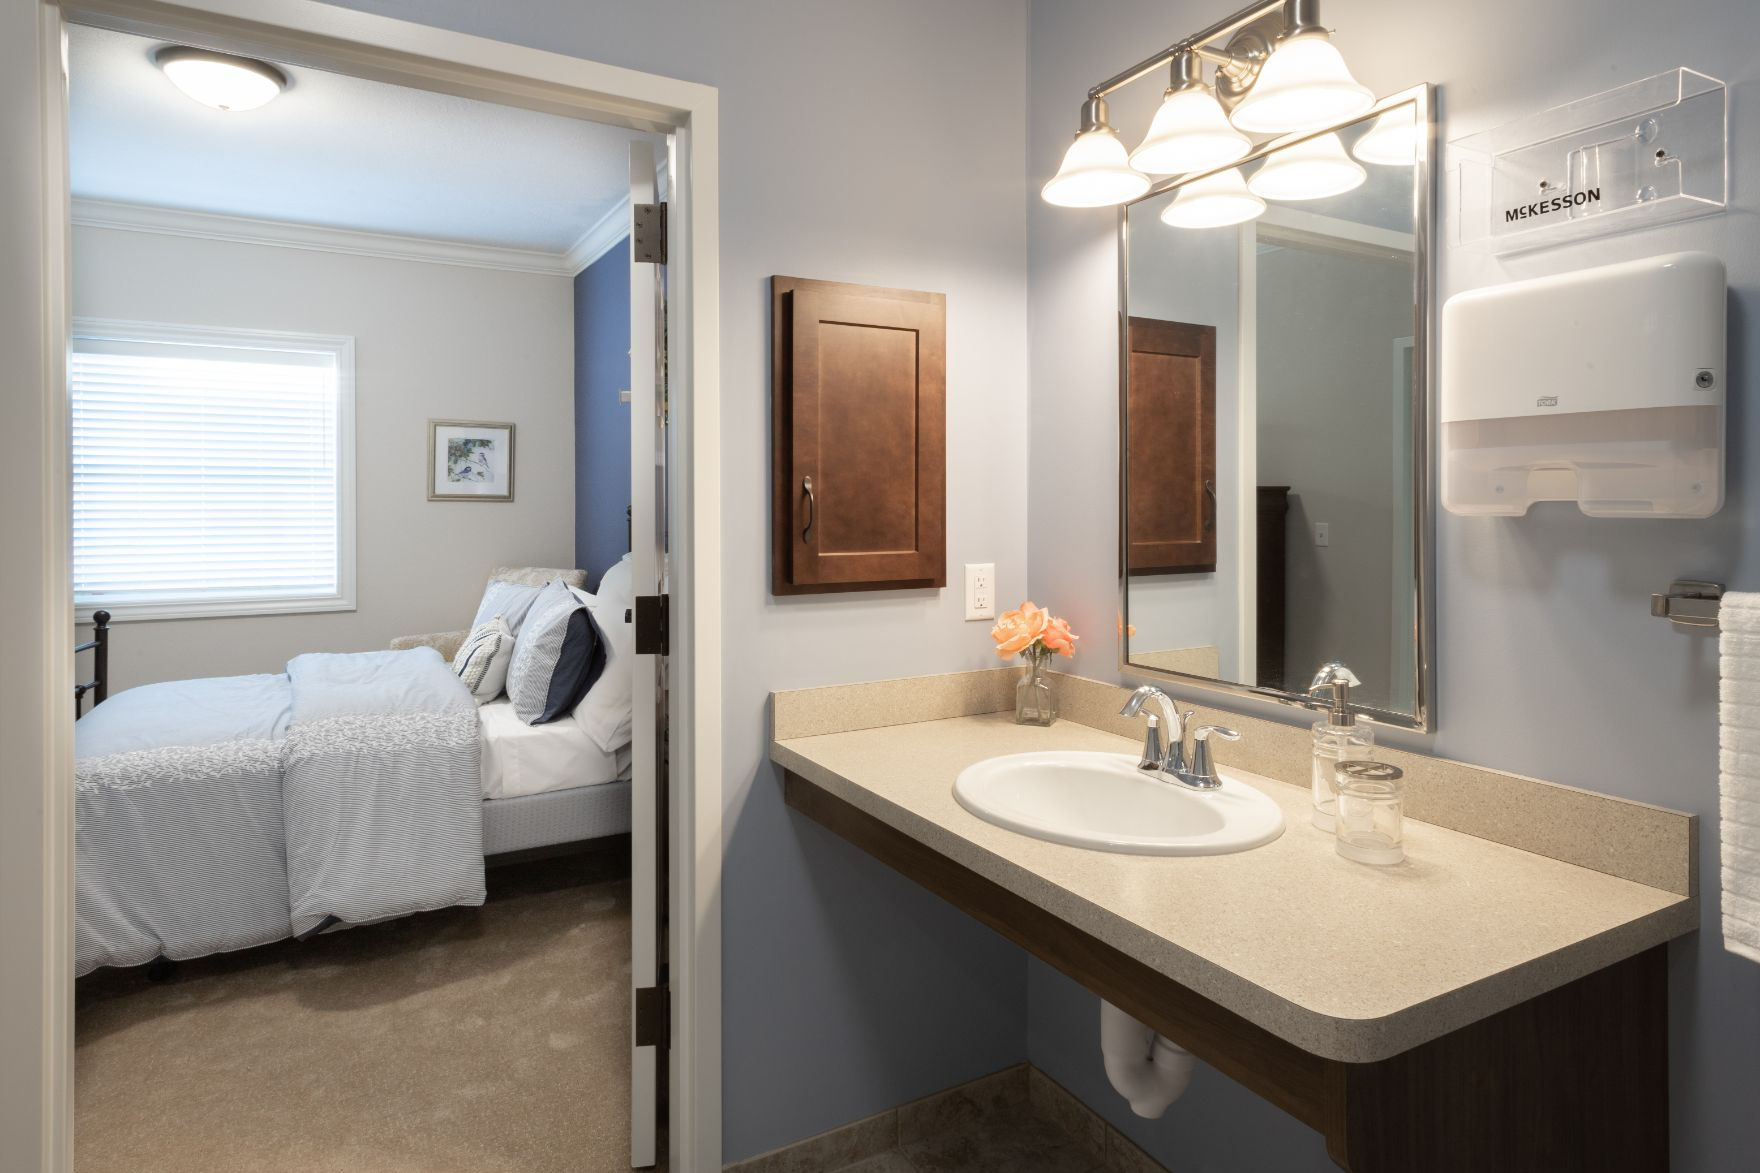 resident bedroom and bathroom